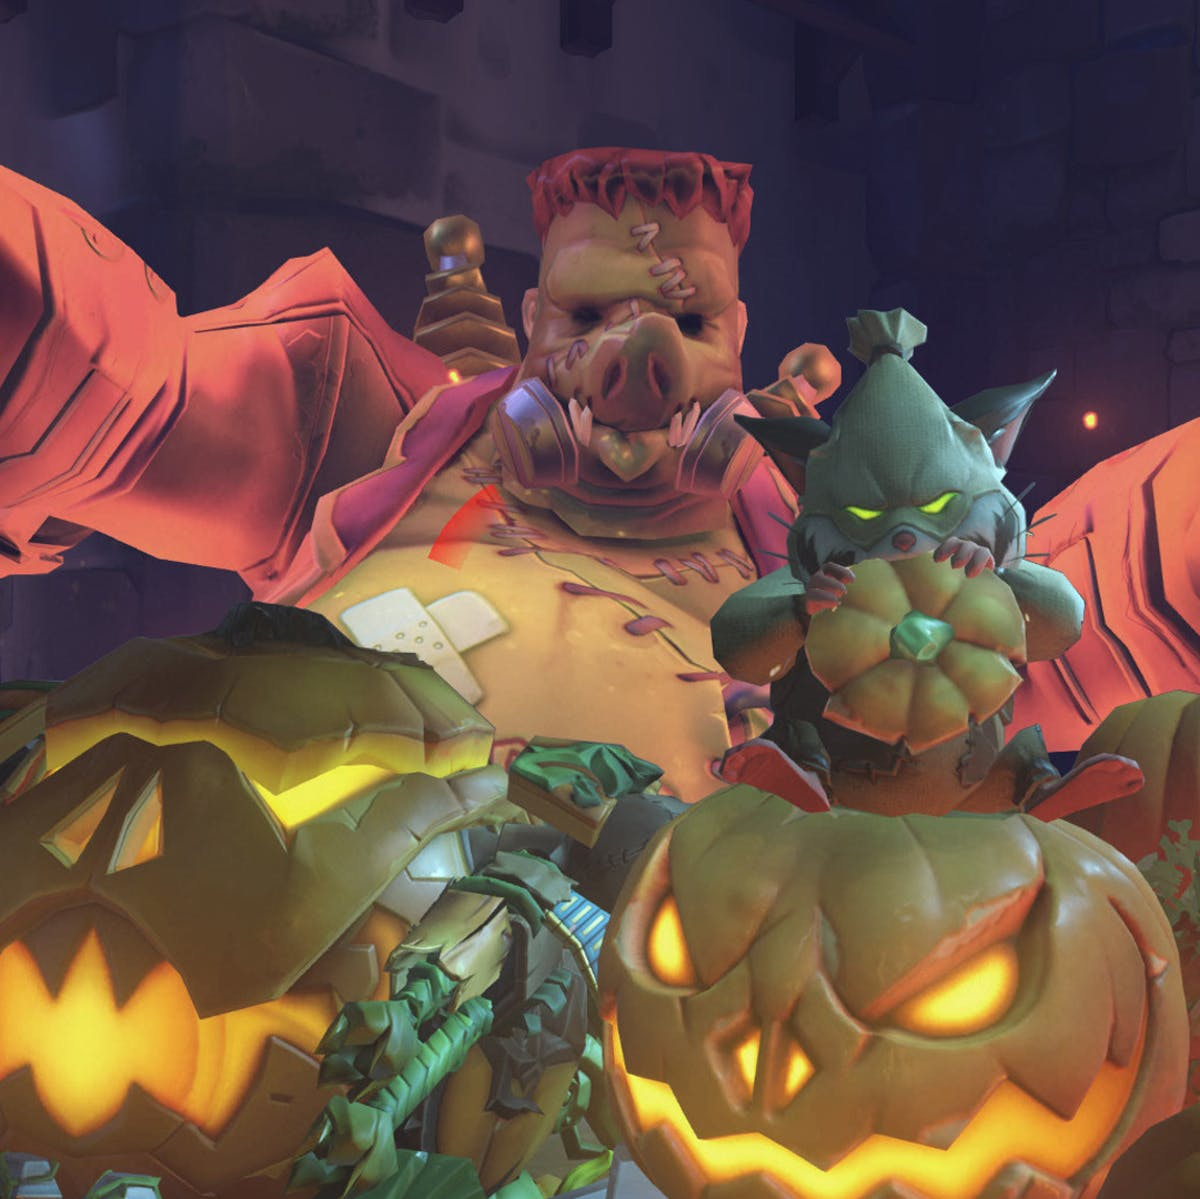 'Overwatch' Halloween 2019 skins, event, release date, start time, and more